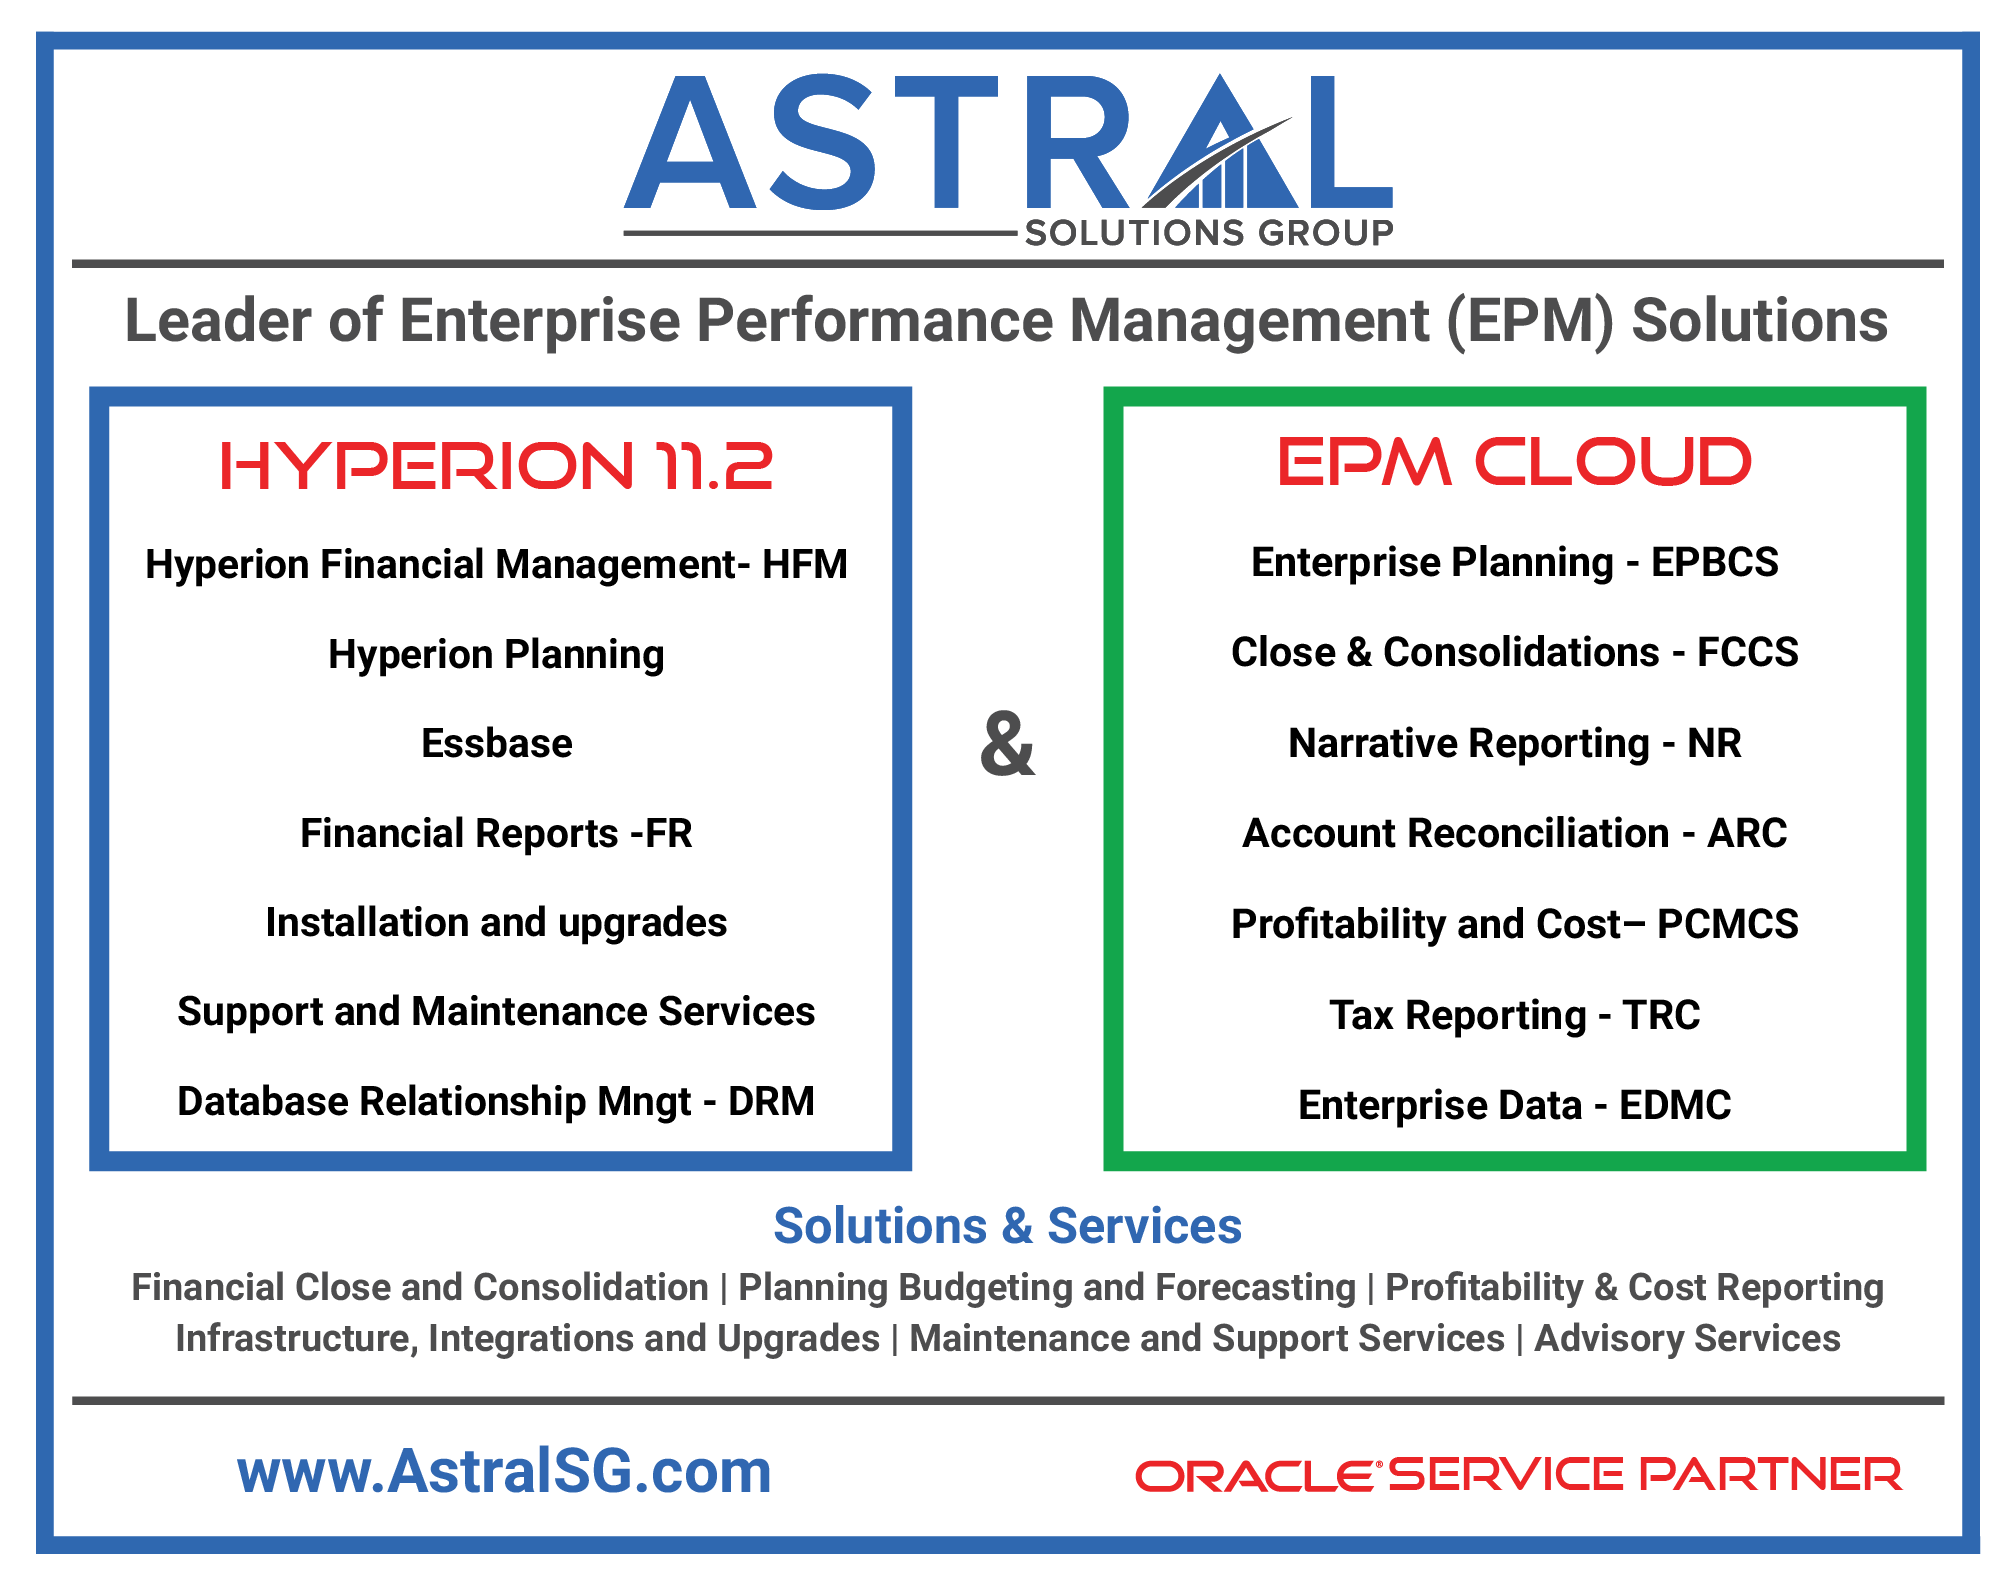 Astral Solutions Group Solutions and Services